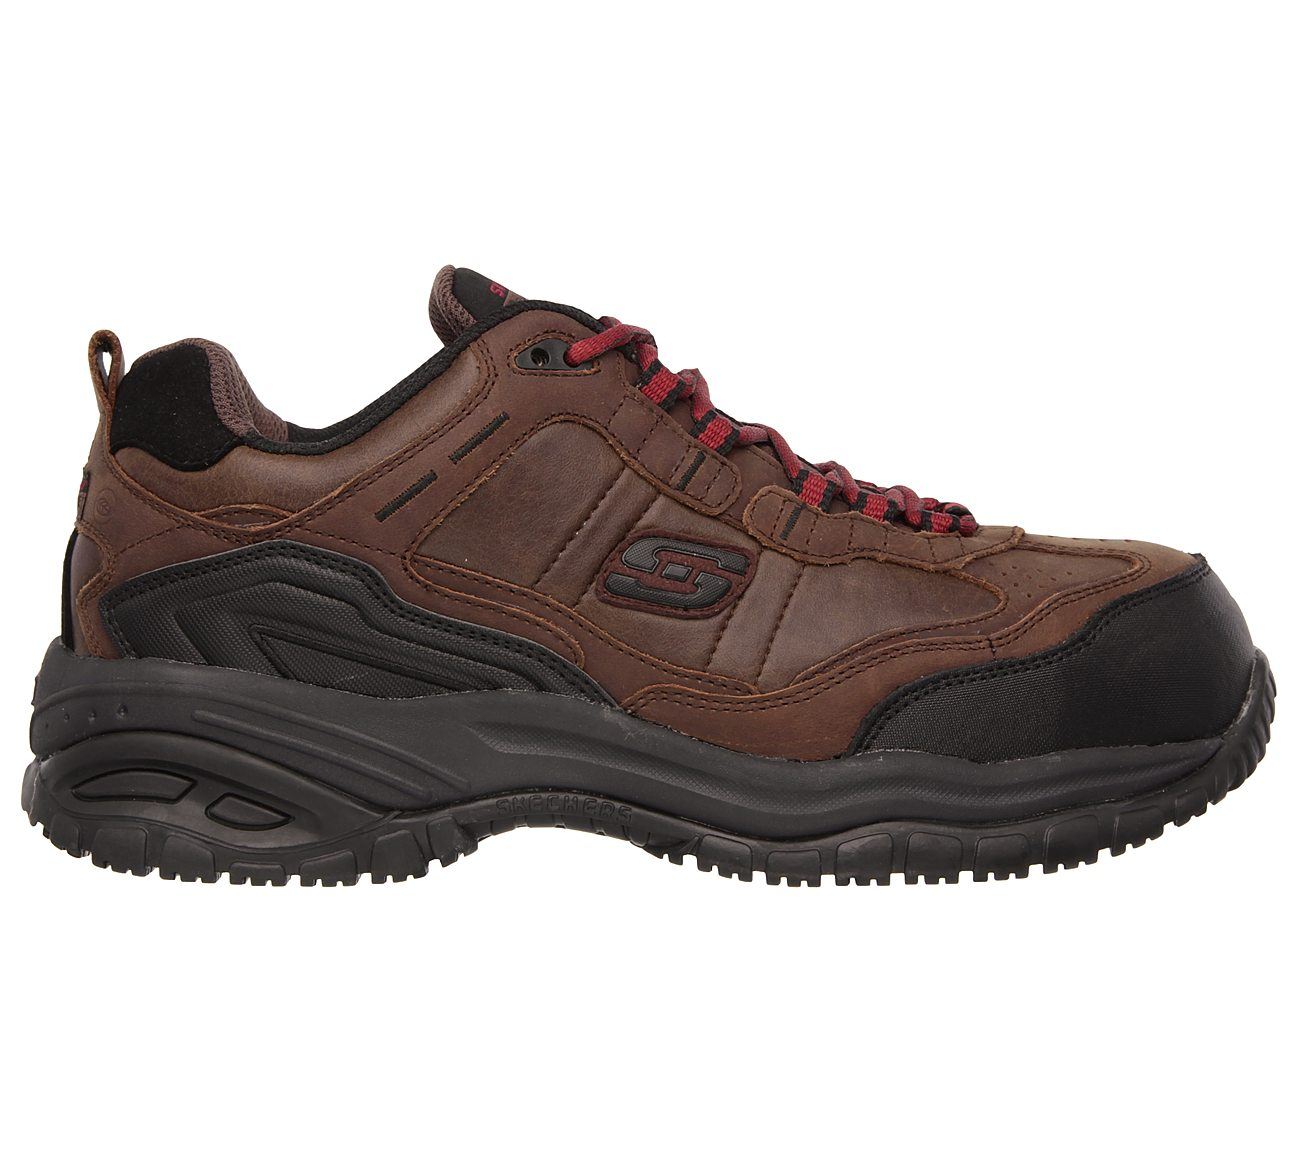 Skechers Work Relaxed Fit Soft ... Stride Constructor II Men's Composite-Toe Shoes cifKBRE